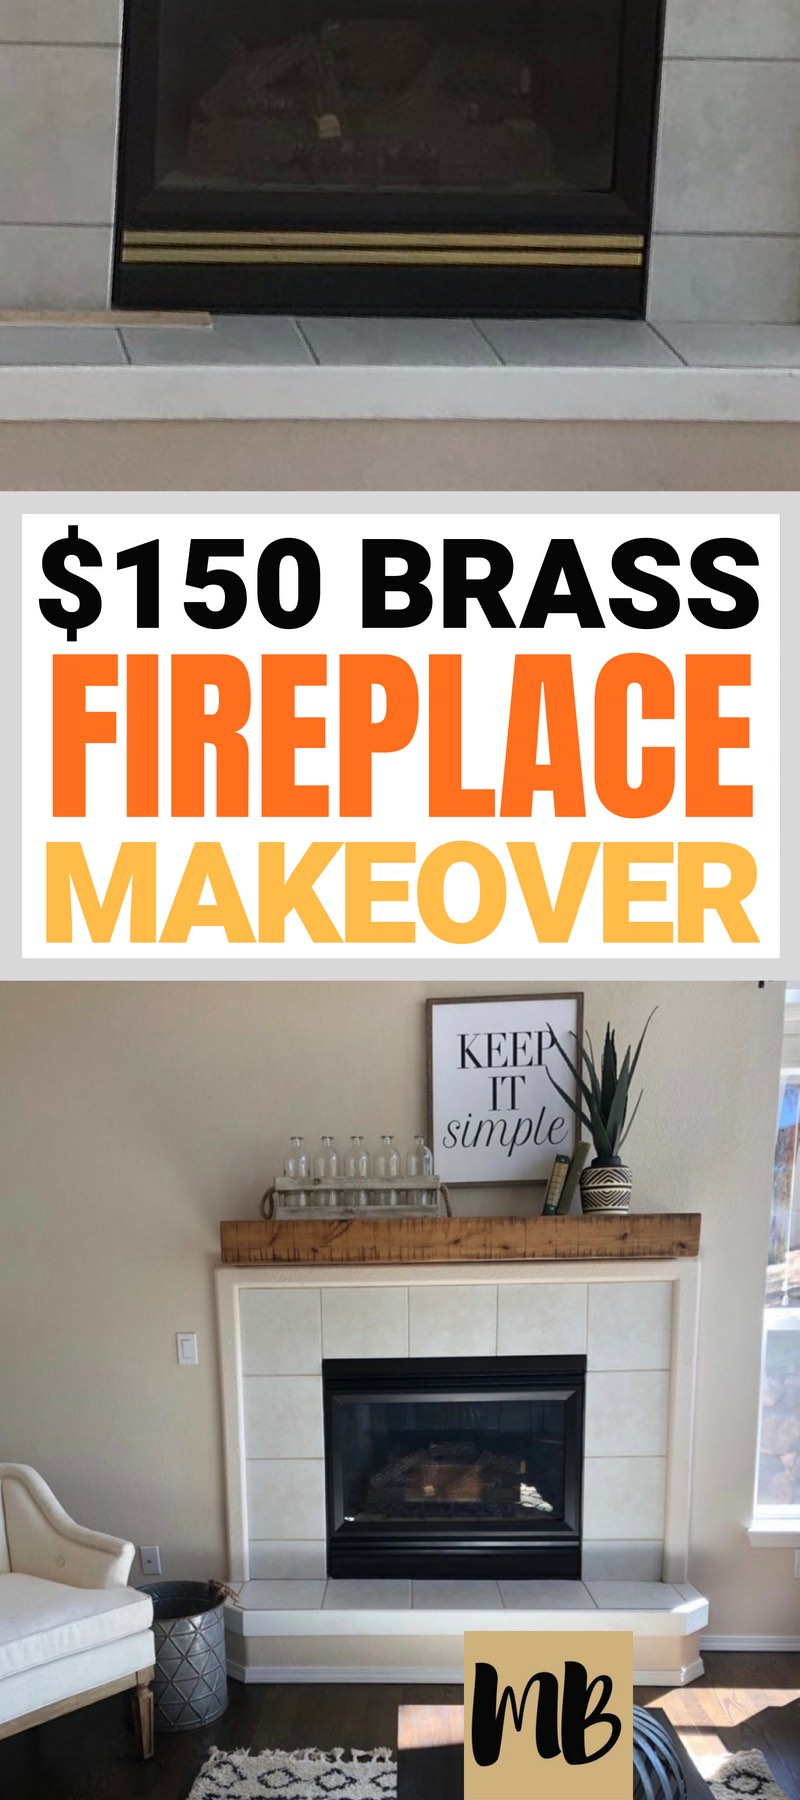 Brass fireplace makeover for under $150 | You can spray paint over brass fireplaces! | #diy #homedecor #fireplace #homemakeover